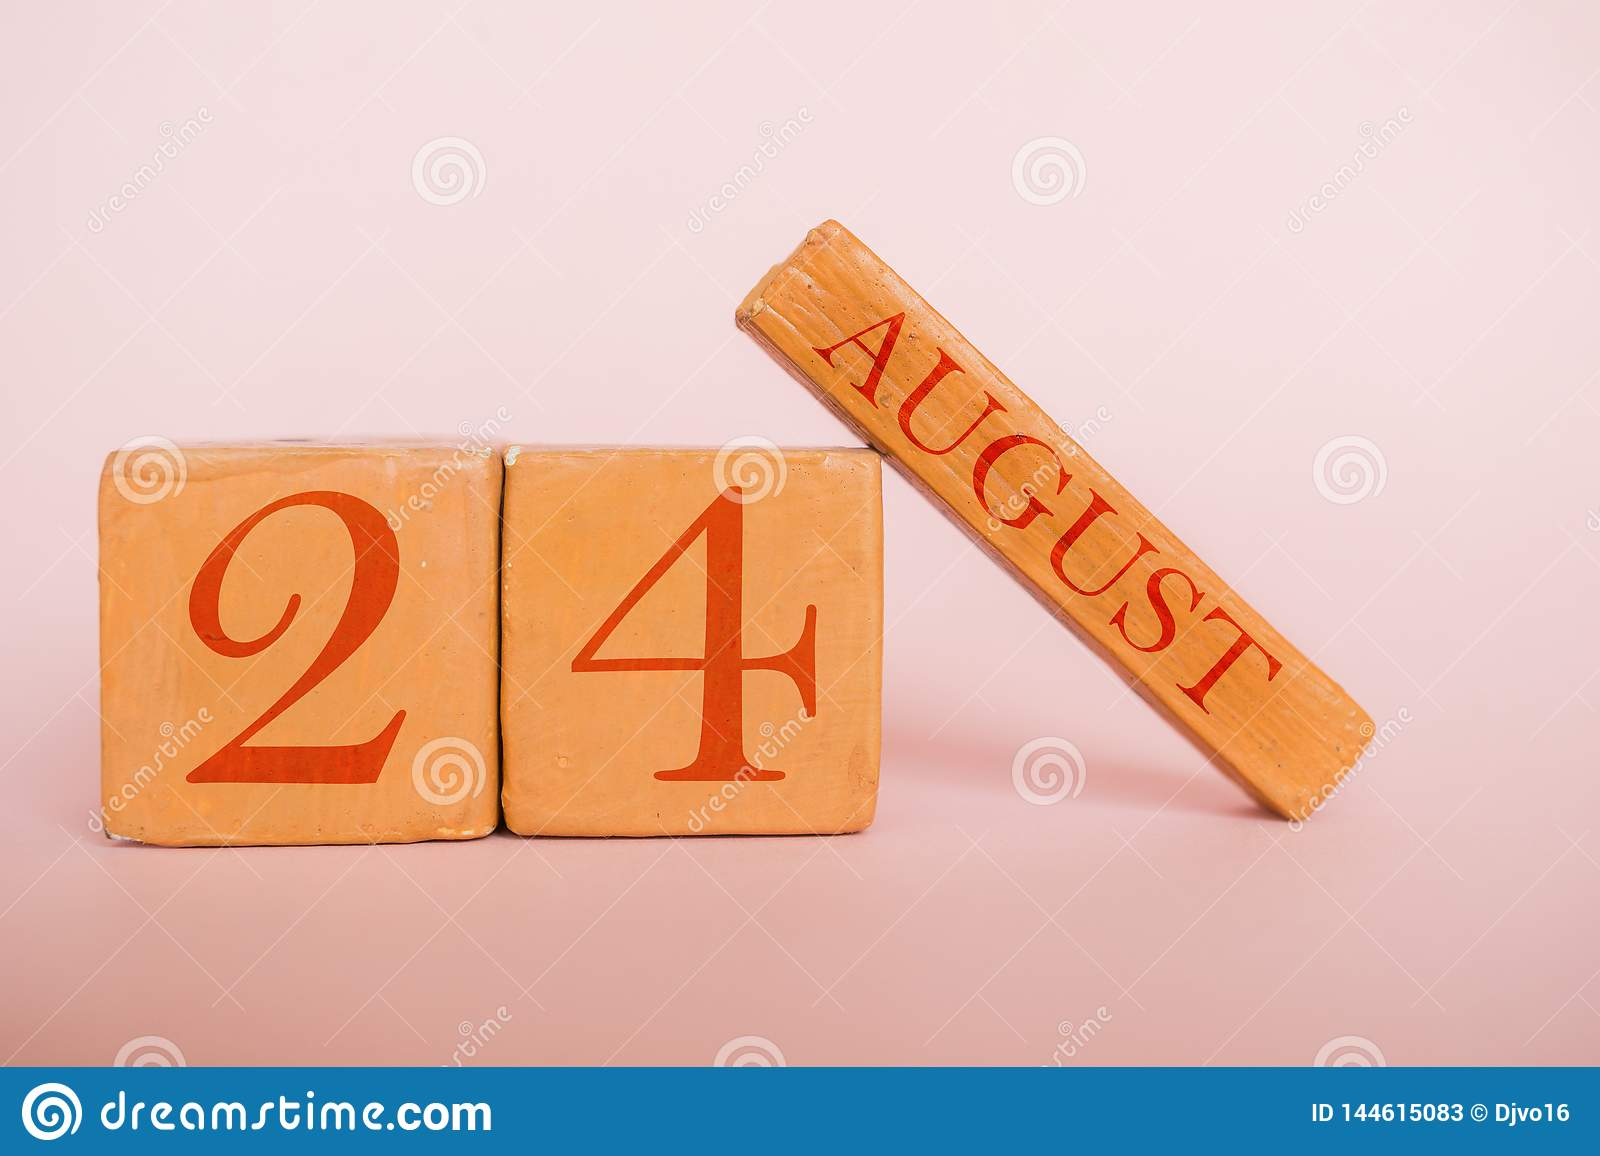 august 24th. Day 24 of month, handmade wood calendar  on modern color background. summer month, day of the year concept